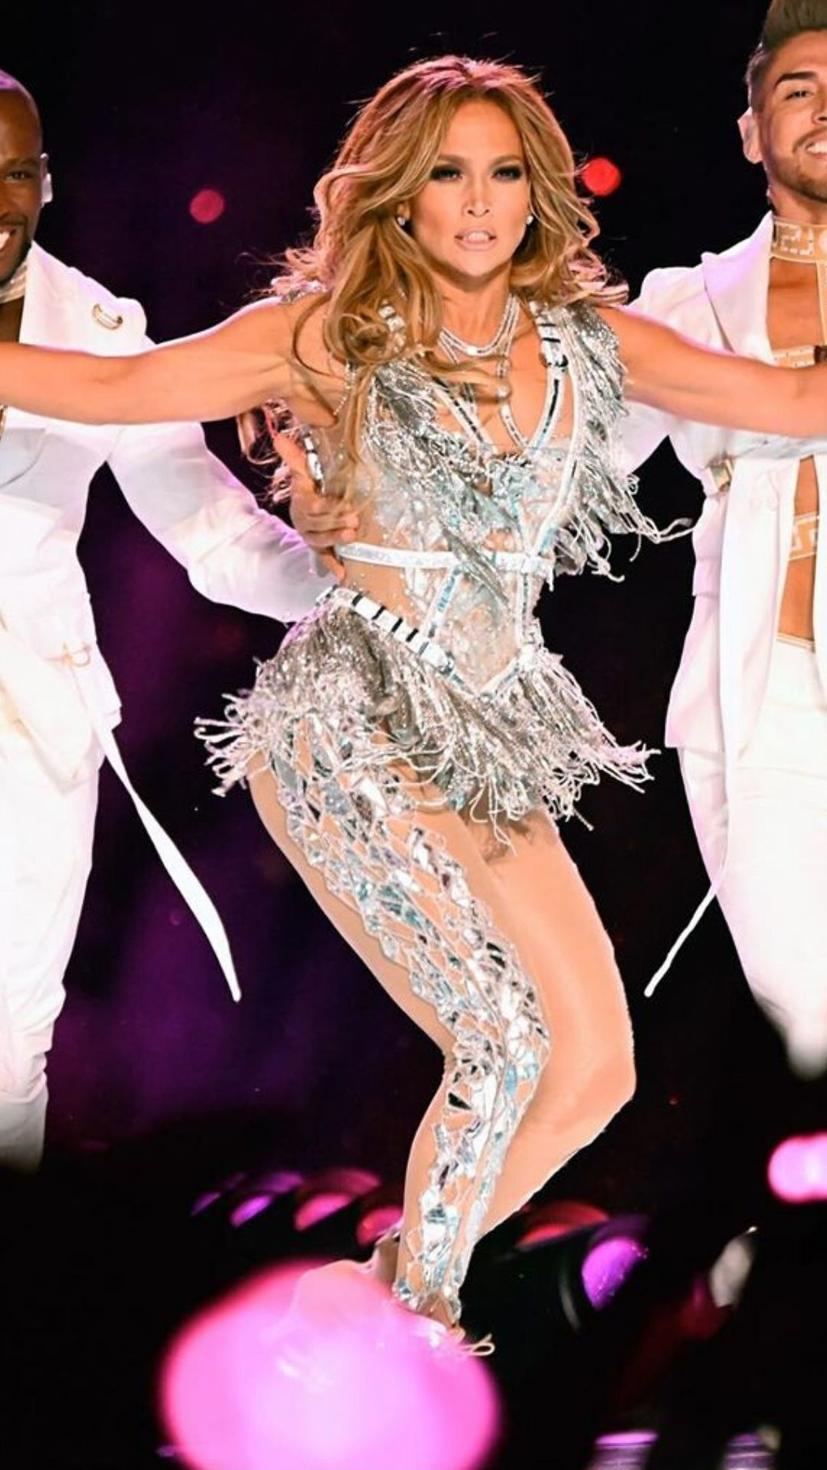 JLO wears a silver toned Versace bodysuit for her Super Bowl performance